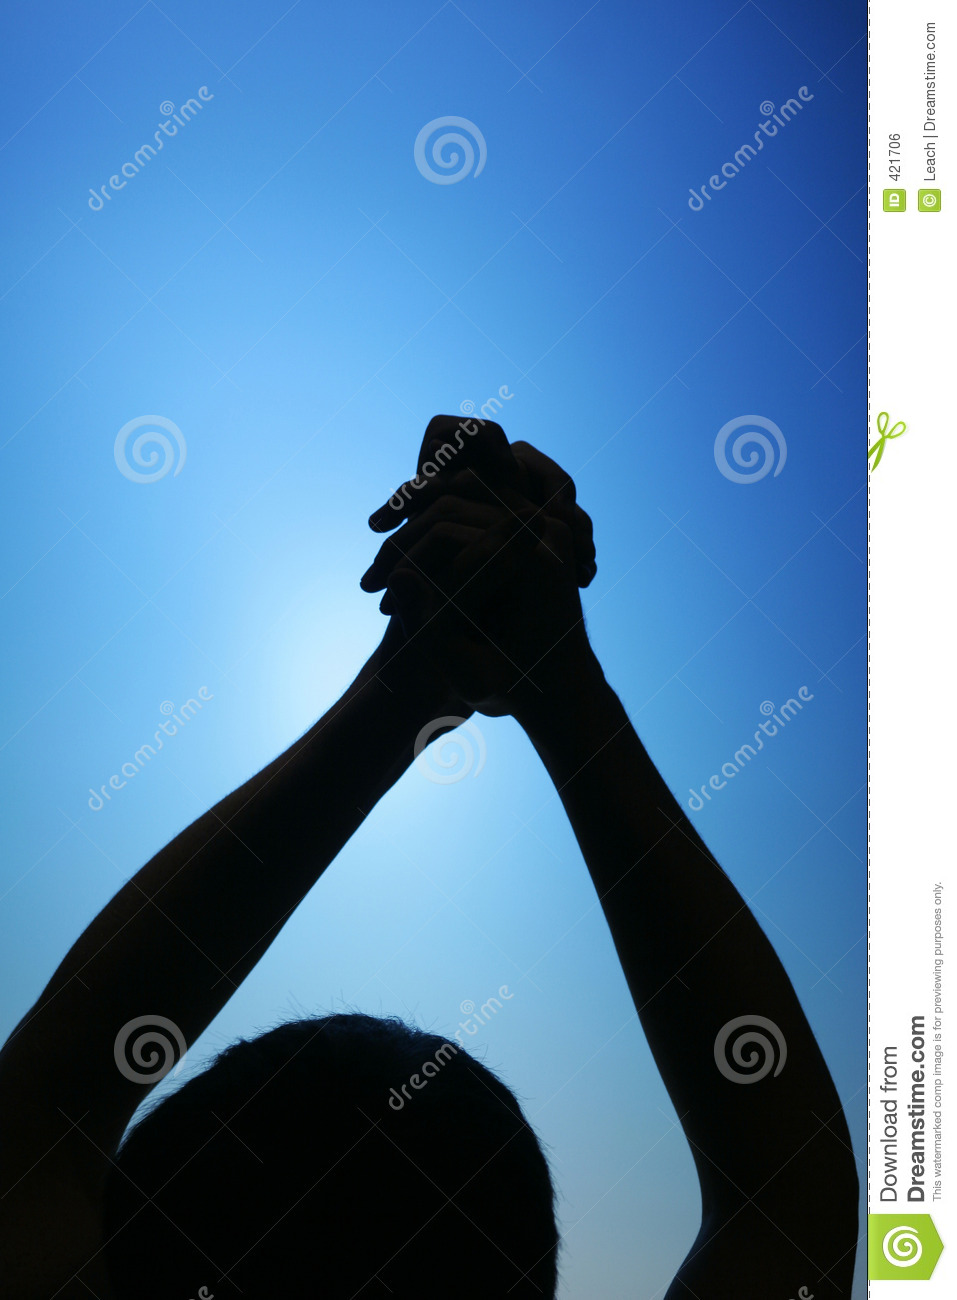 Signs And Symbols Of Success And Winning Stock Photo Image Of Pray